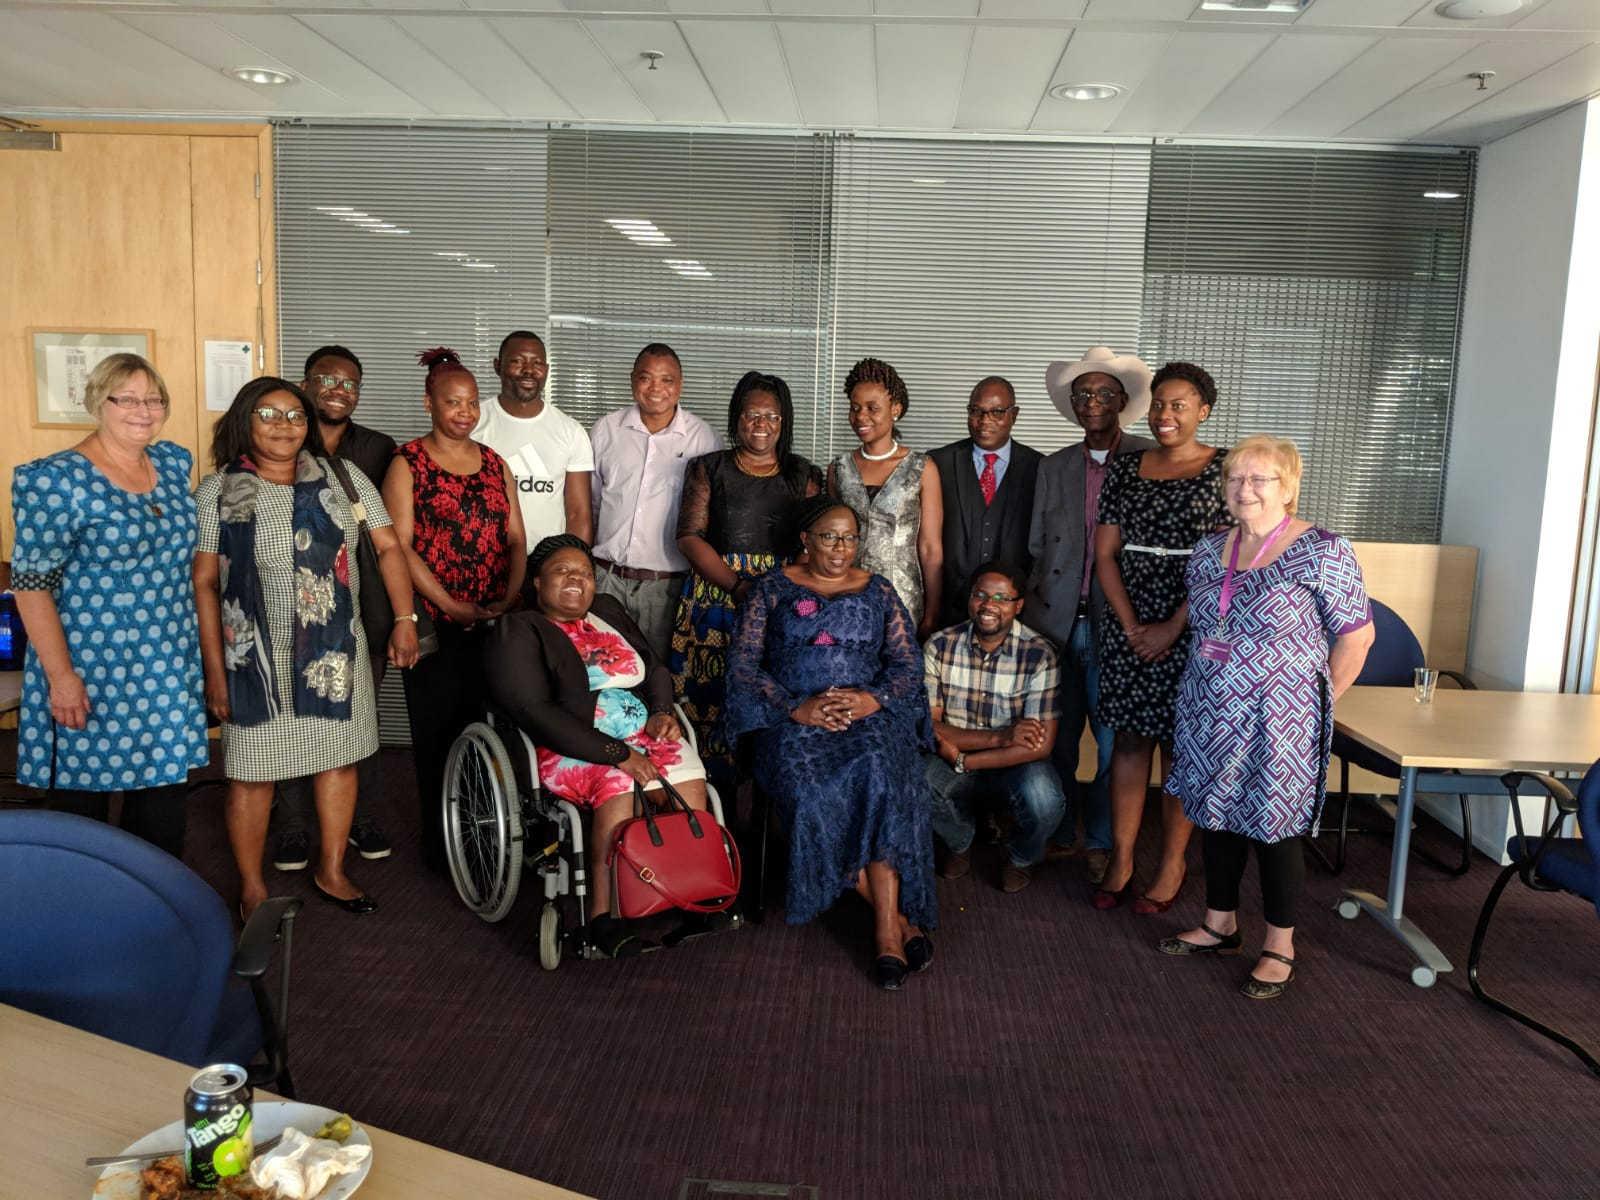 - Meetings with influential individuals such as Honourable Emerine Kabanshi, Zambian Minister for Community Development and Social Services, enables our organisation to foster partnerships and showcase our impact and contribution to the communities we work within.